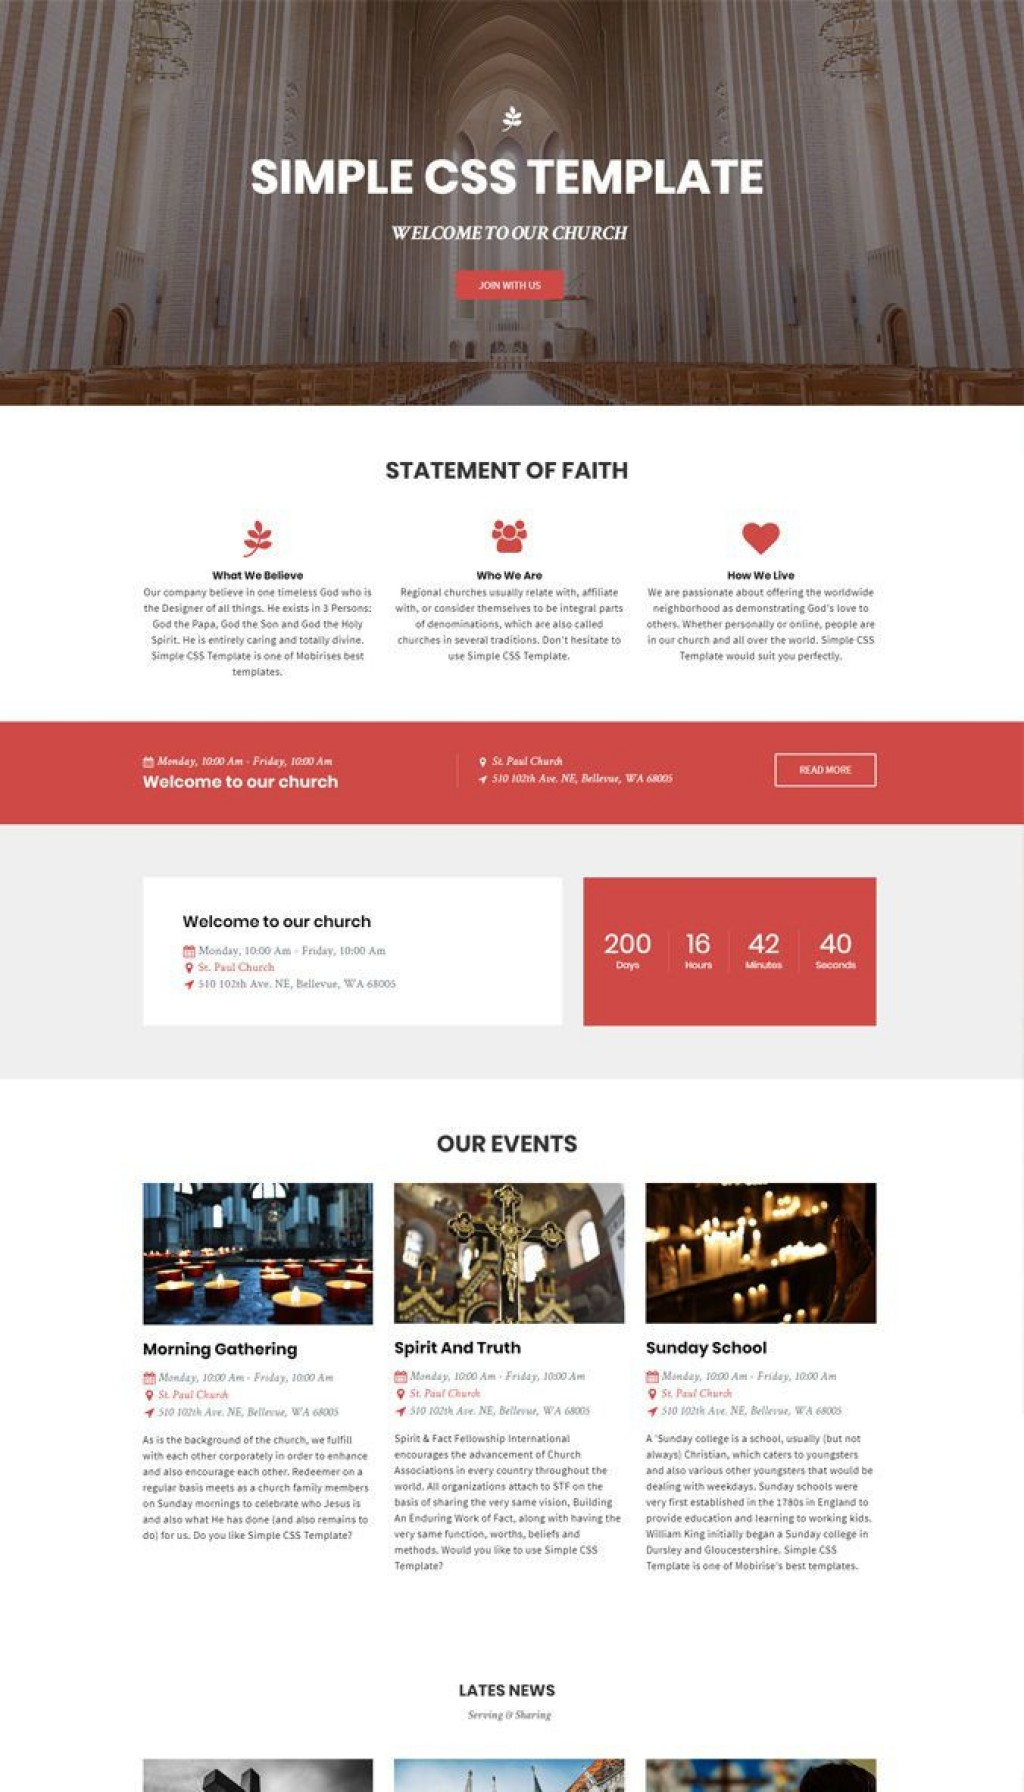 002 Marvelou Website Template Html Cs Free Download Image  Registration Page With Javascript Jquery Responsive Student FormLarge